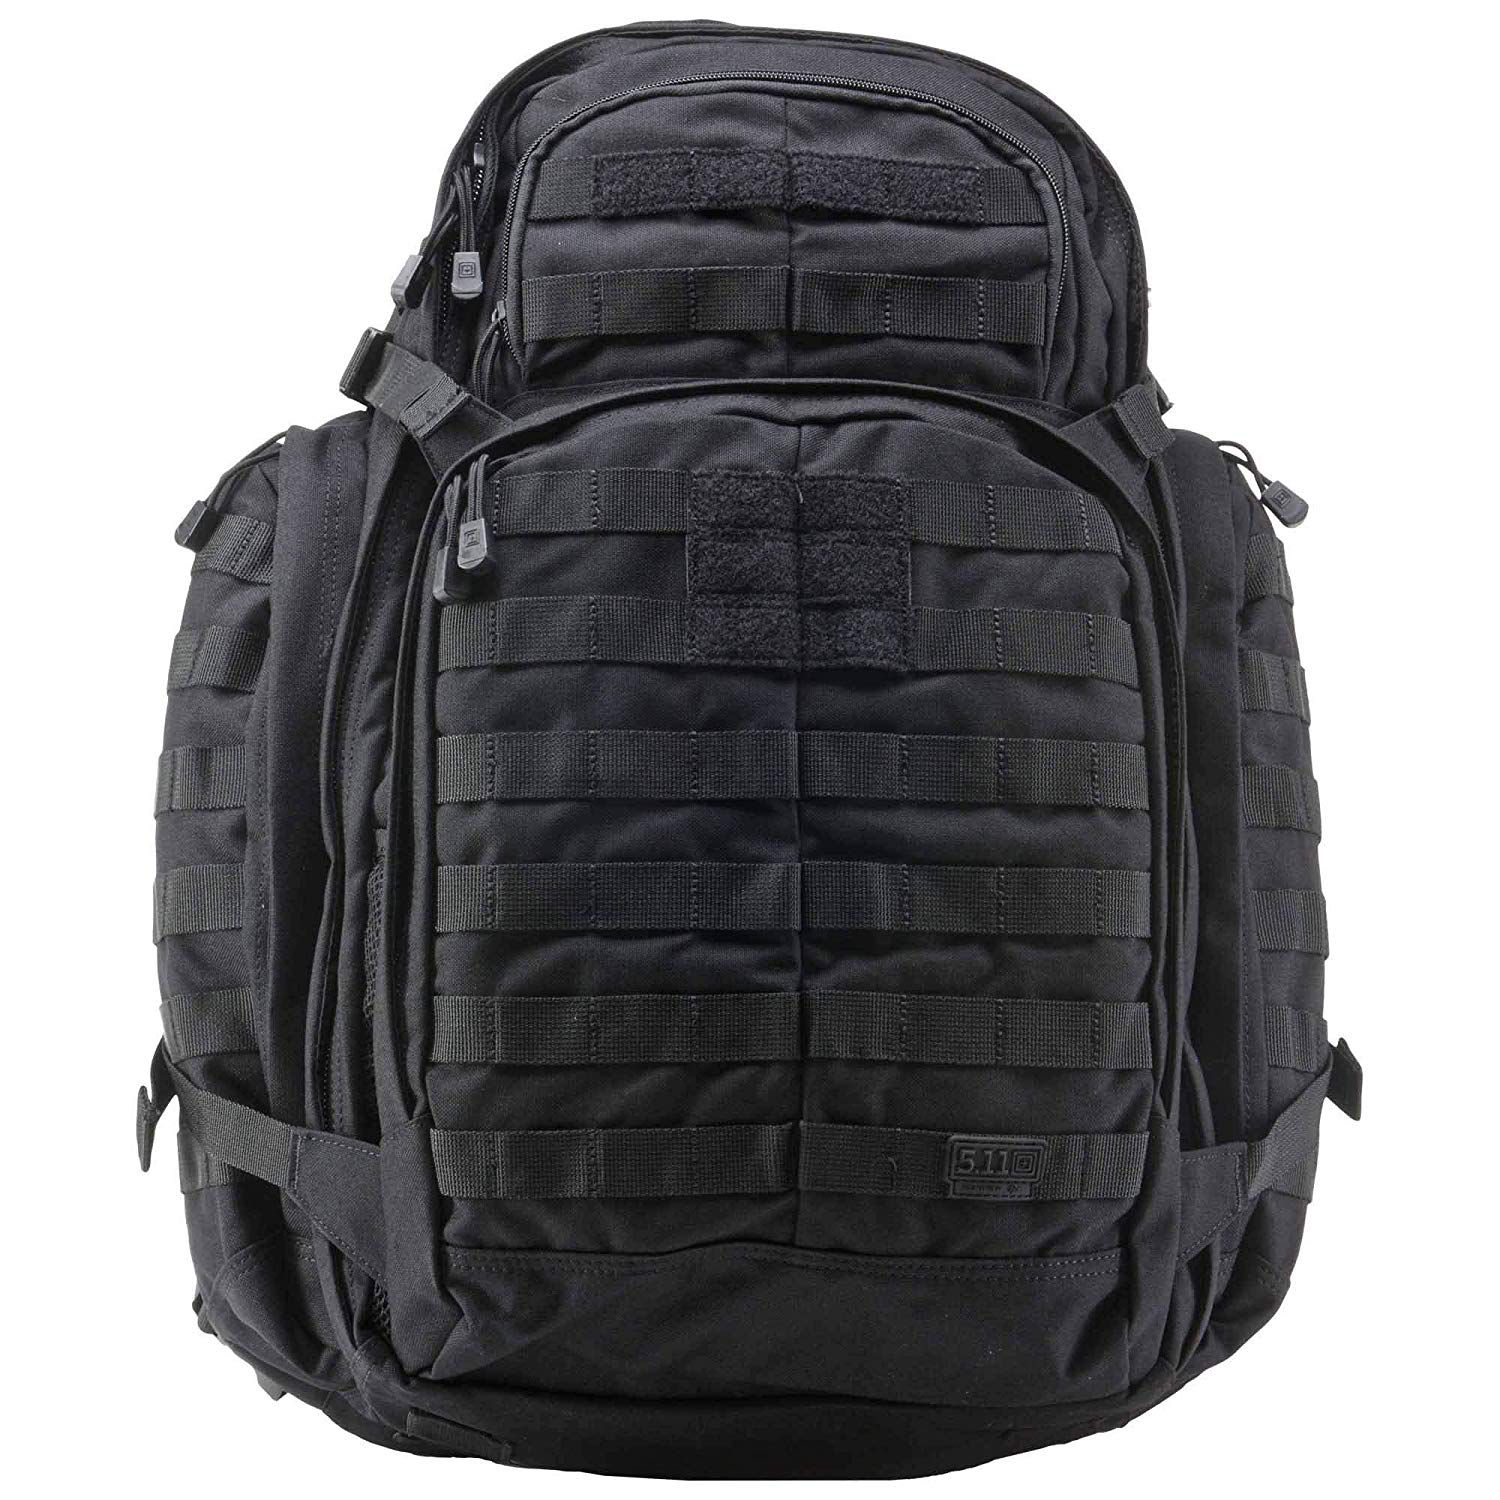 The 8 Best Survival Gear Items to Buy for Your Bug Out Bag in 2018